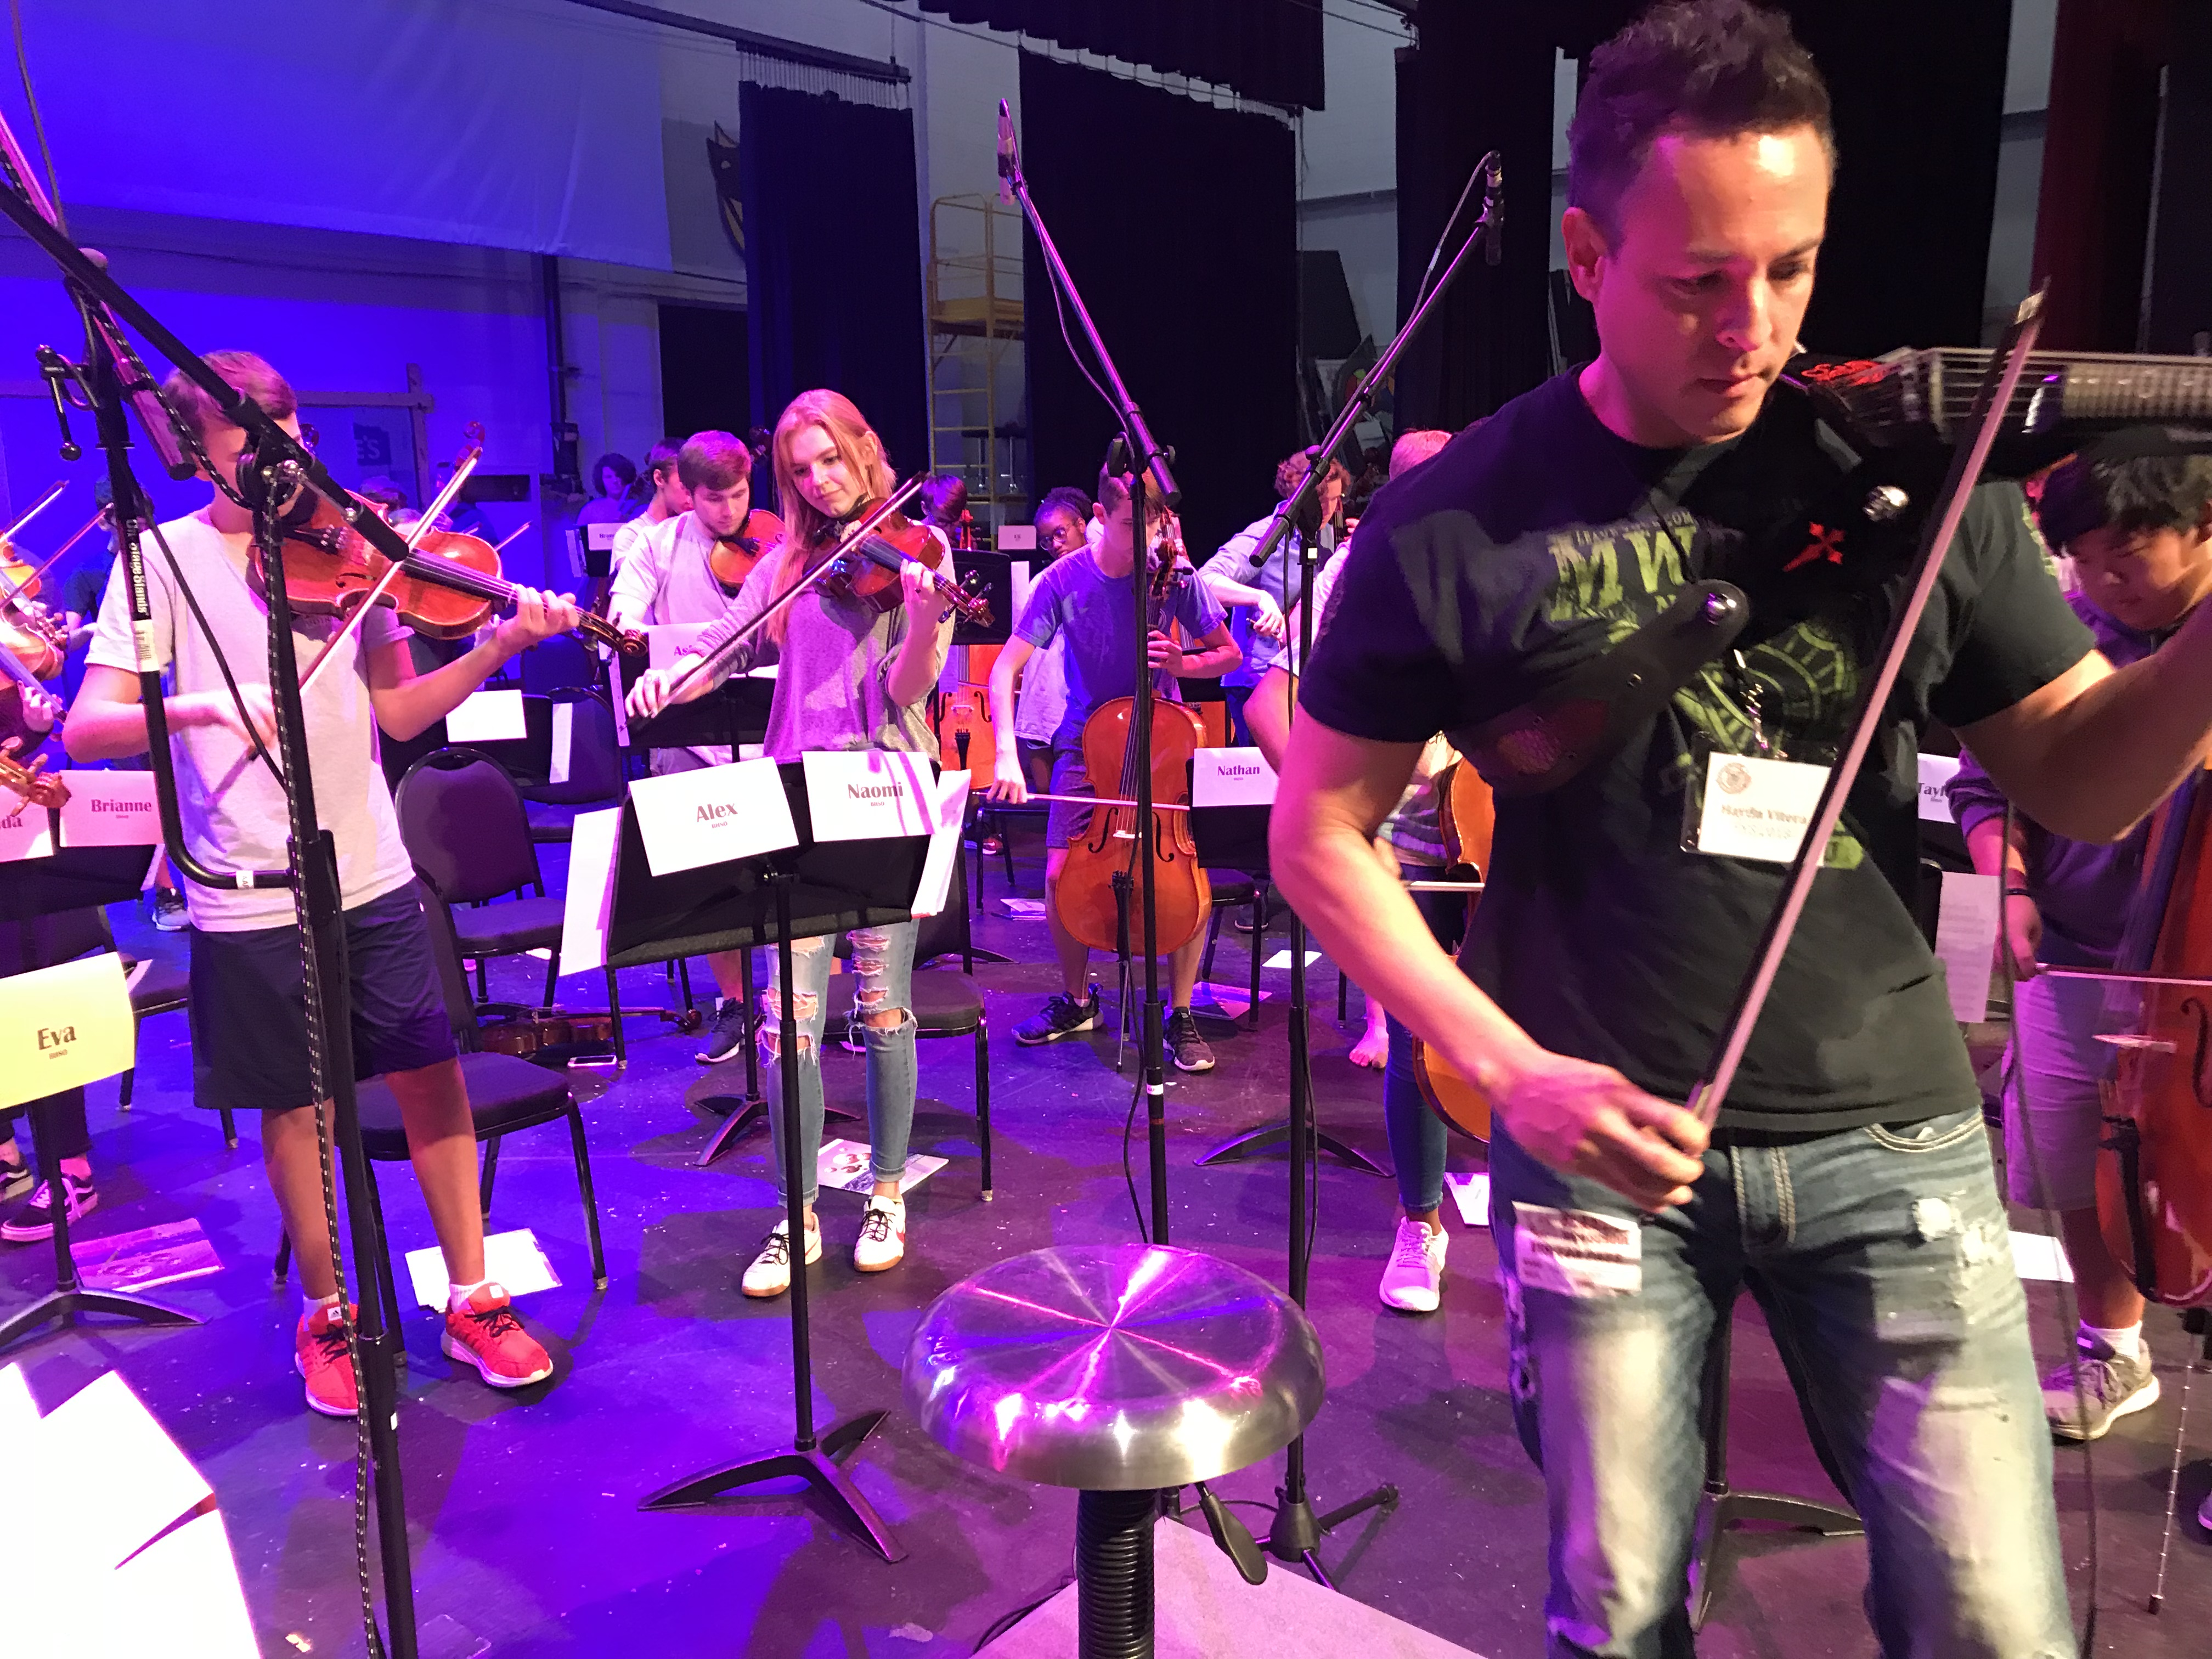 Haydn Vitera, right, leads students during a rehearsal for the